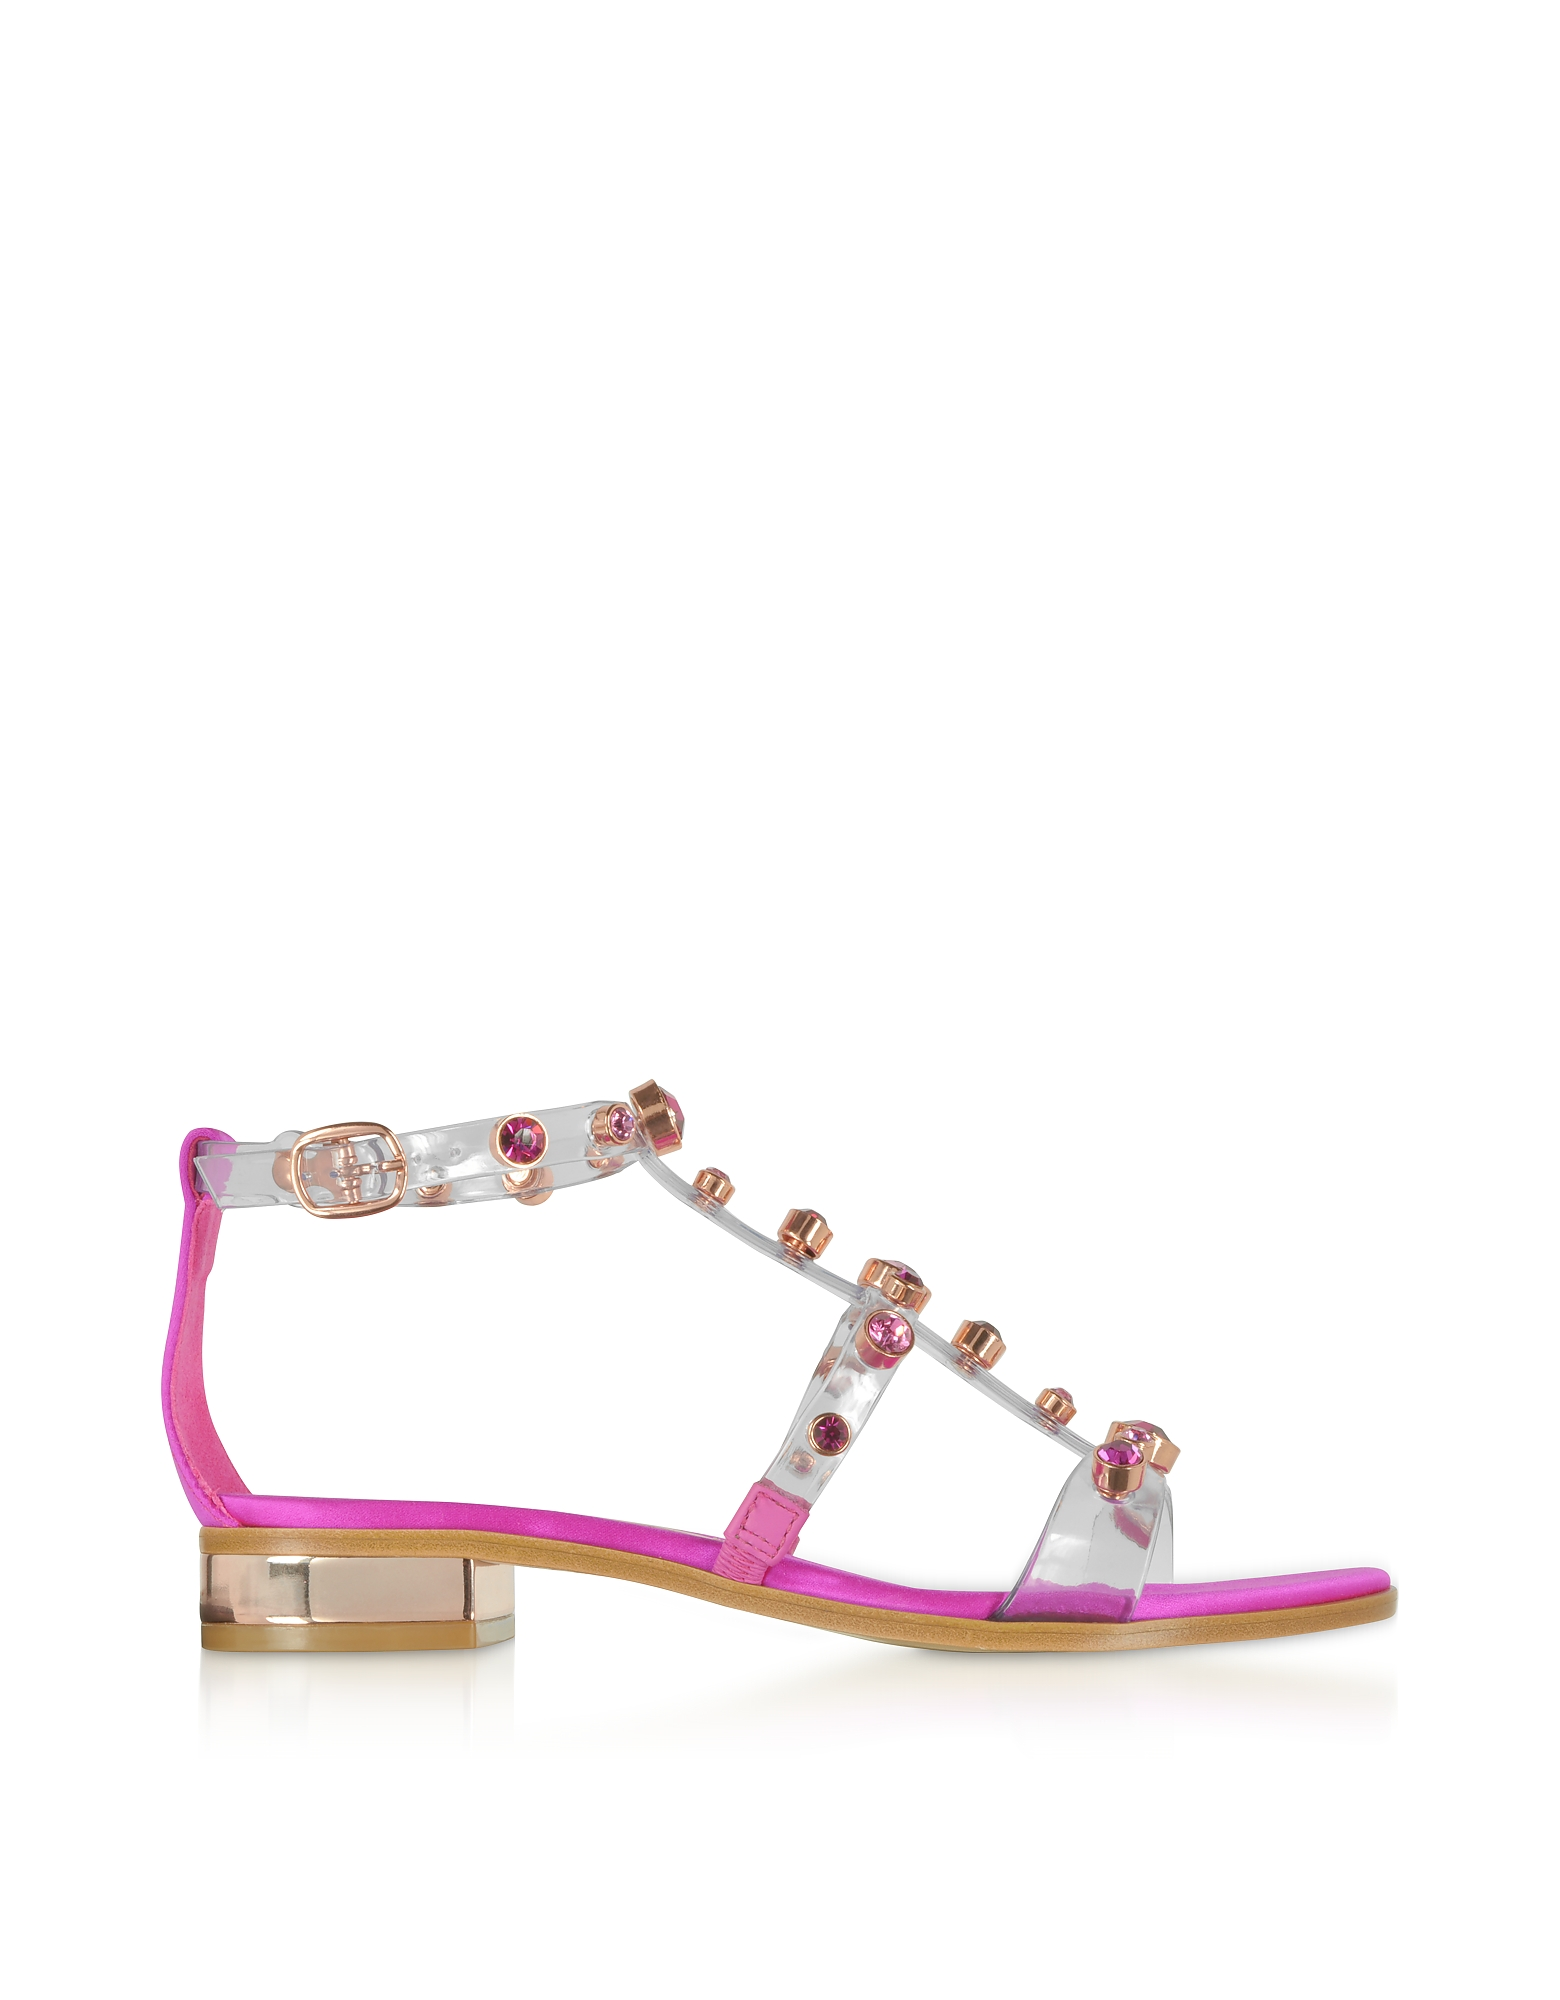 Transparent Vinyl and Satin Dina Flat Sandals